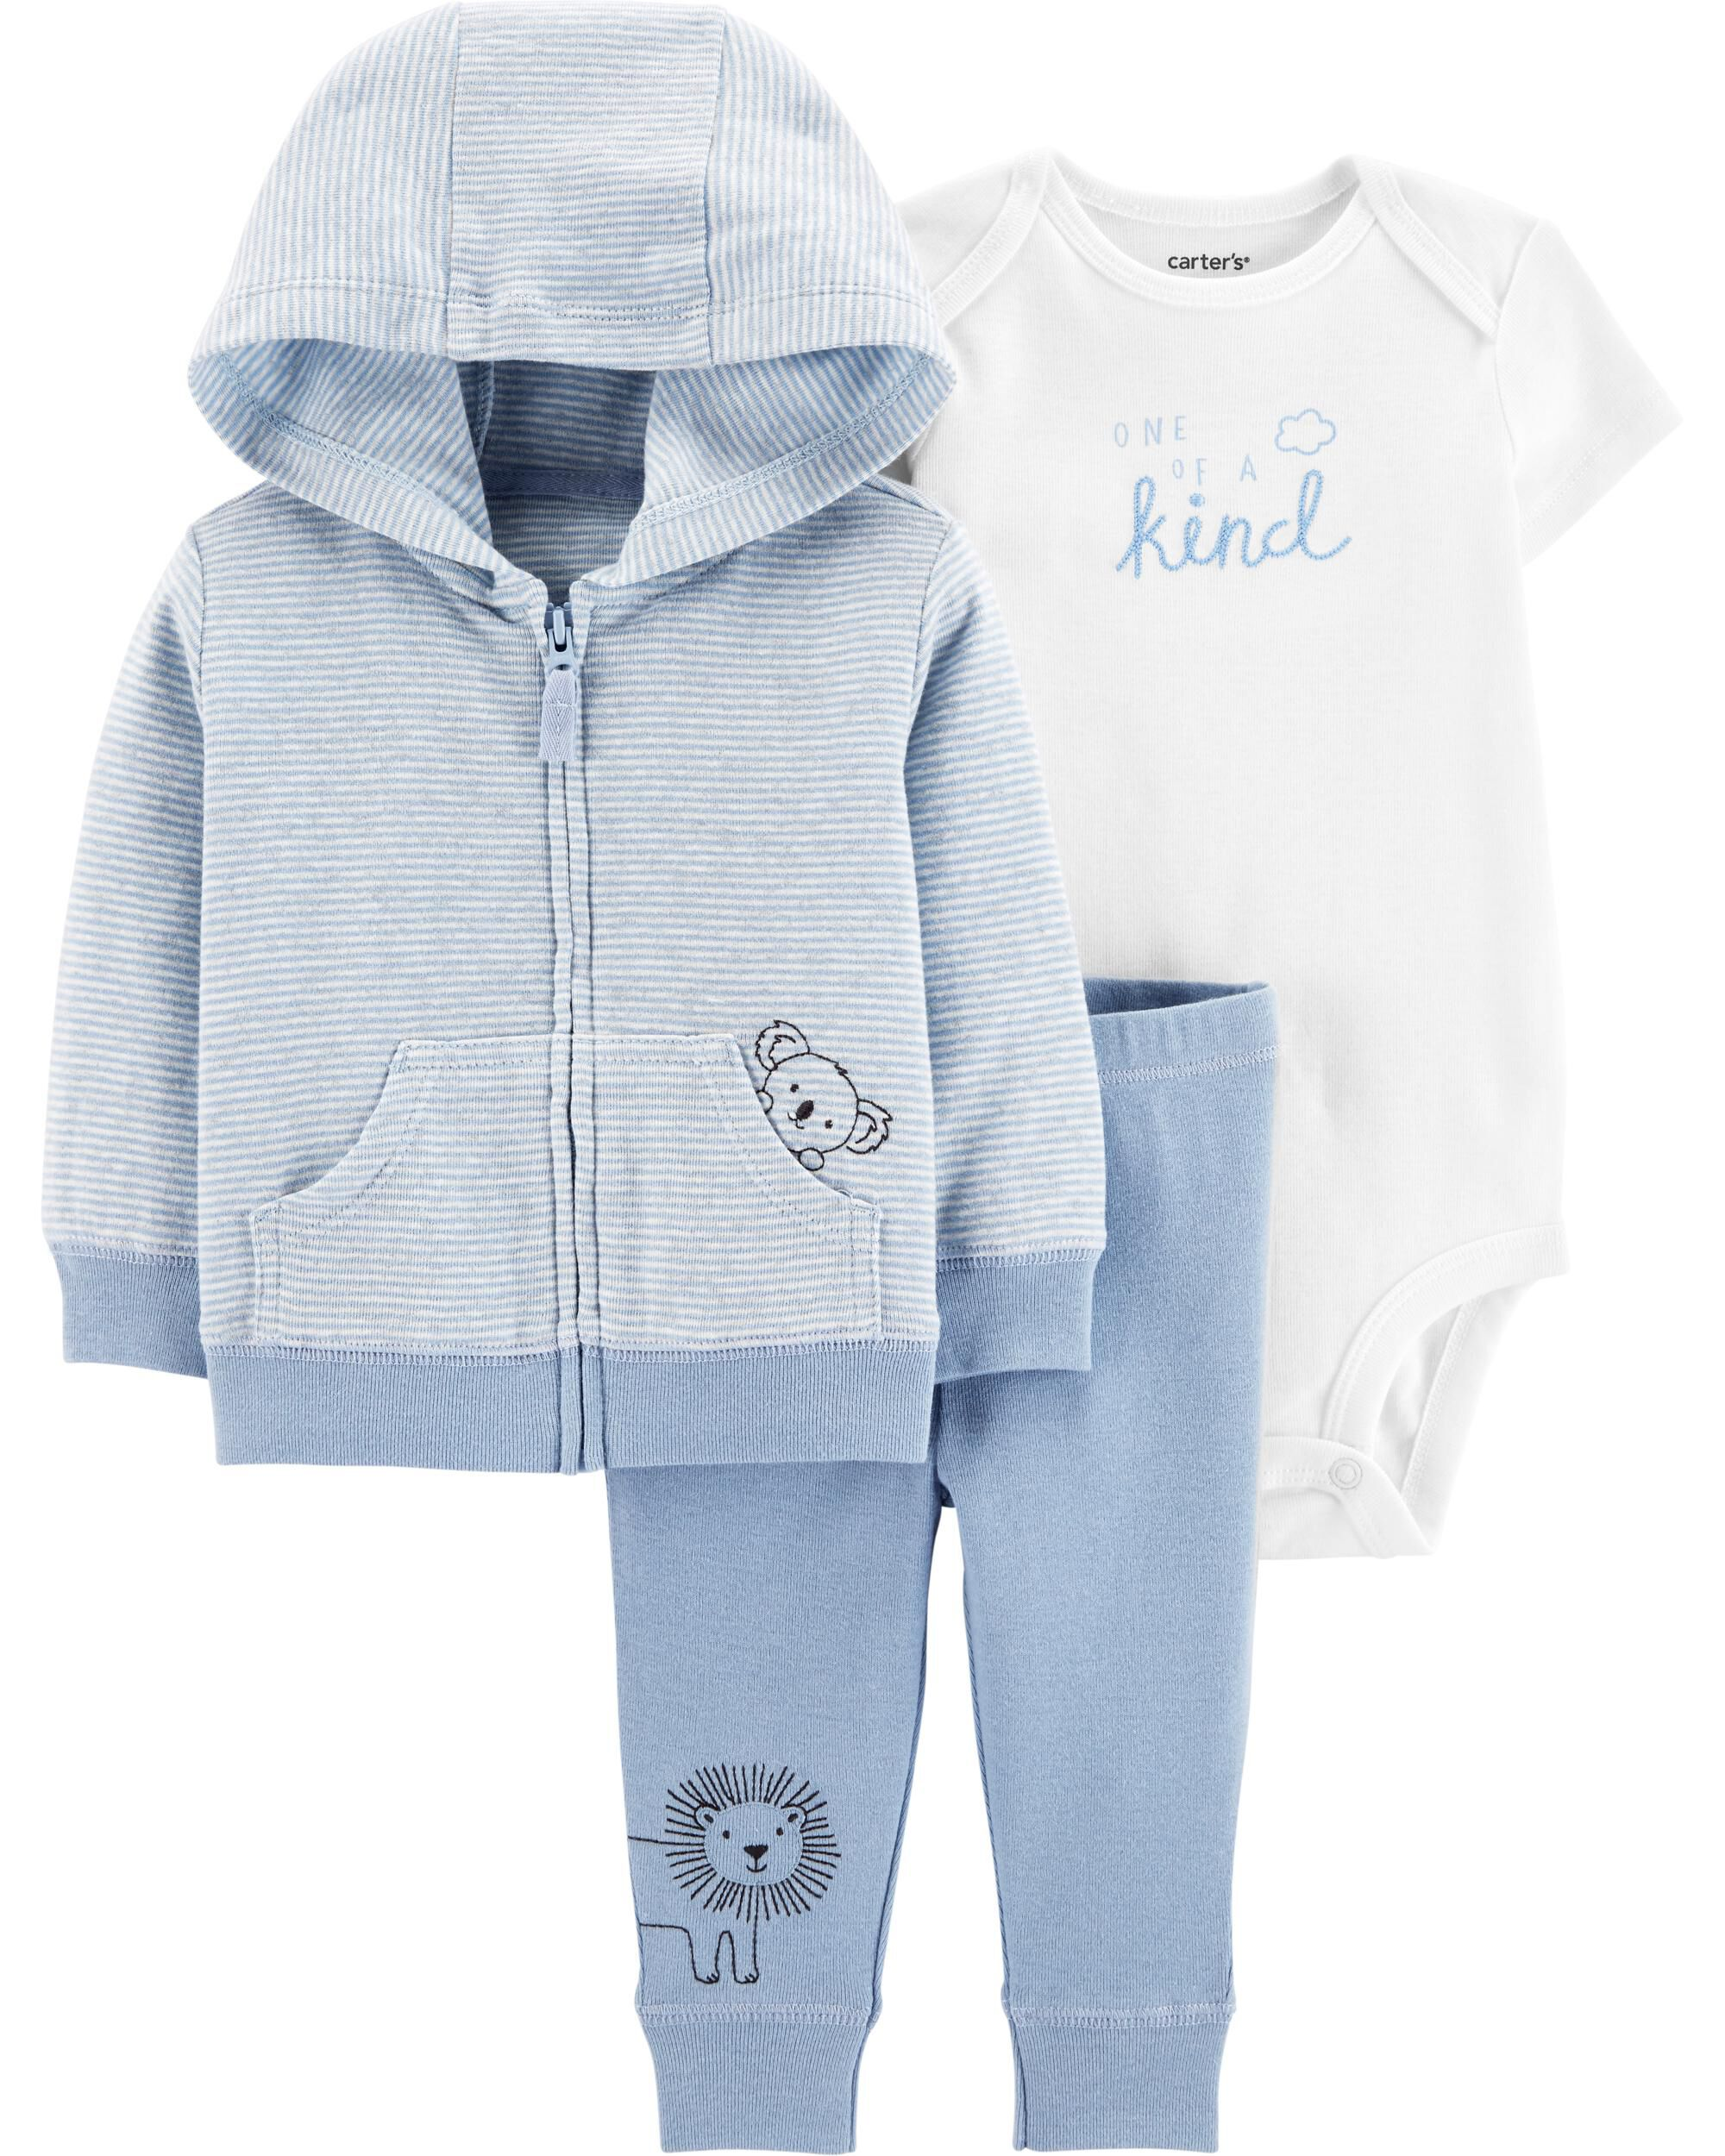 3-Piece Koala Little Jacket Set